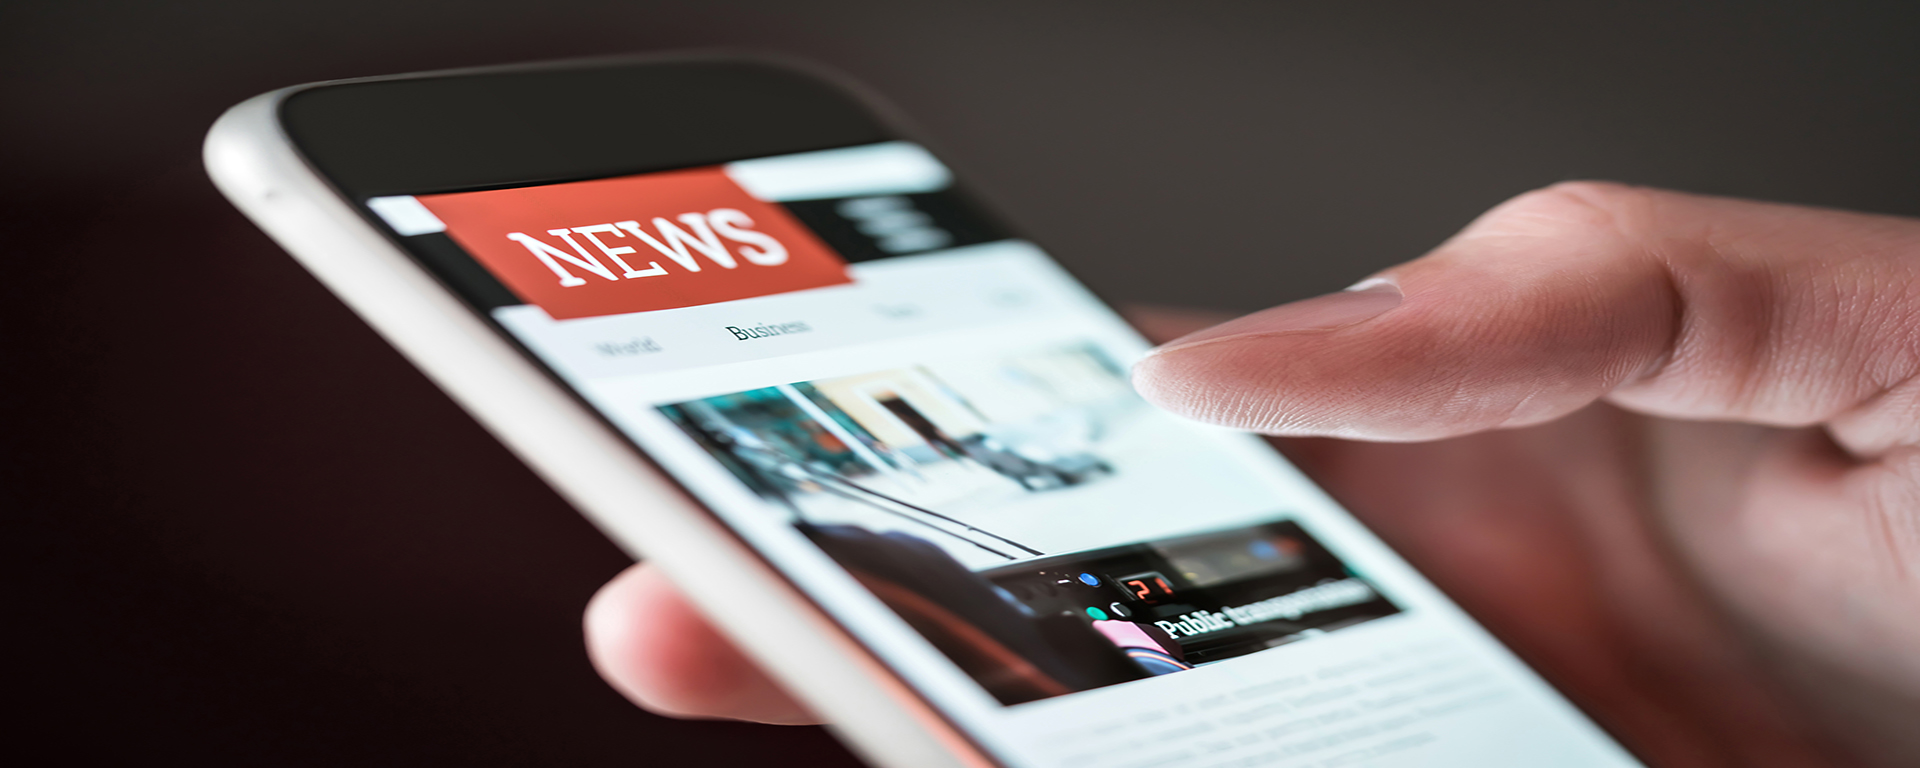 Banner of hand holding a smartphone. The smartphone screen displays a NEWS app website.